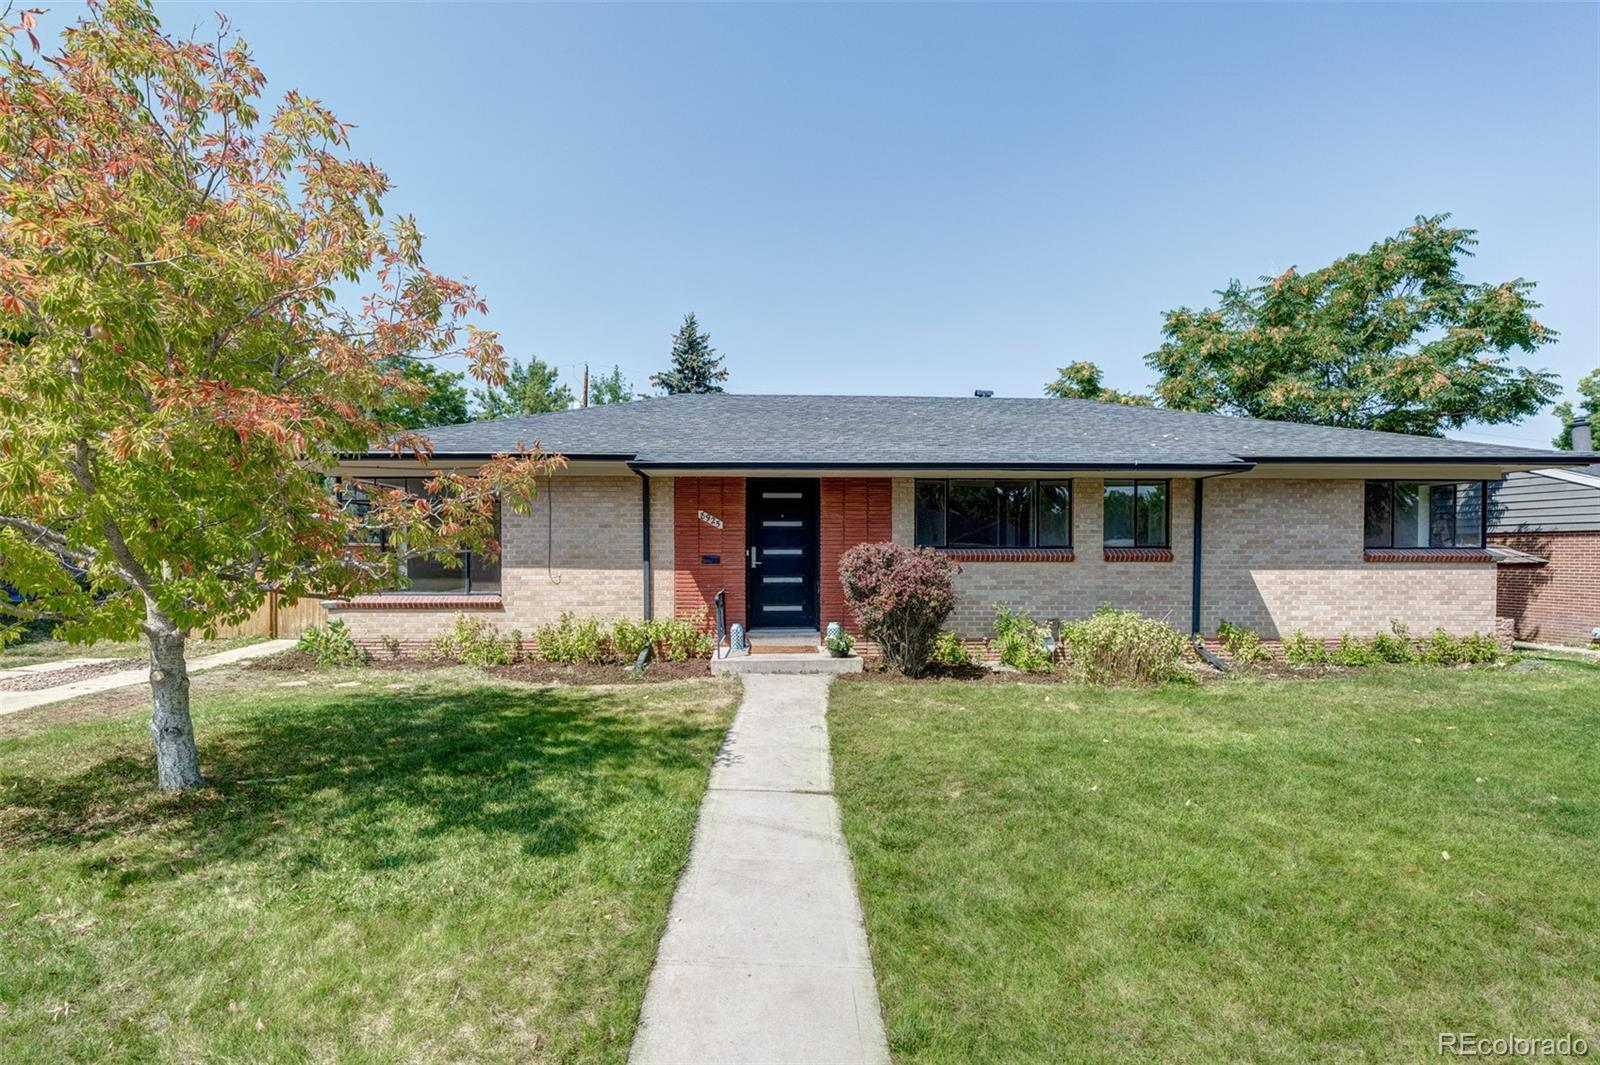 8925 W 4th Place, Lakewood, CO 80226 - #: 7921945